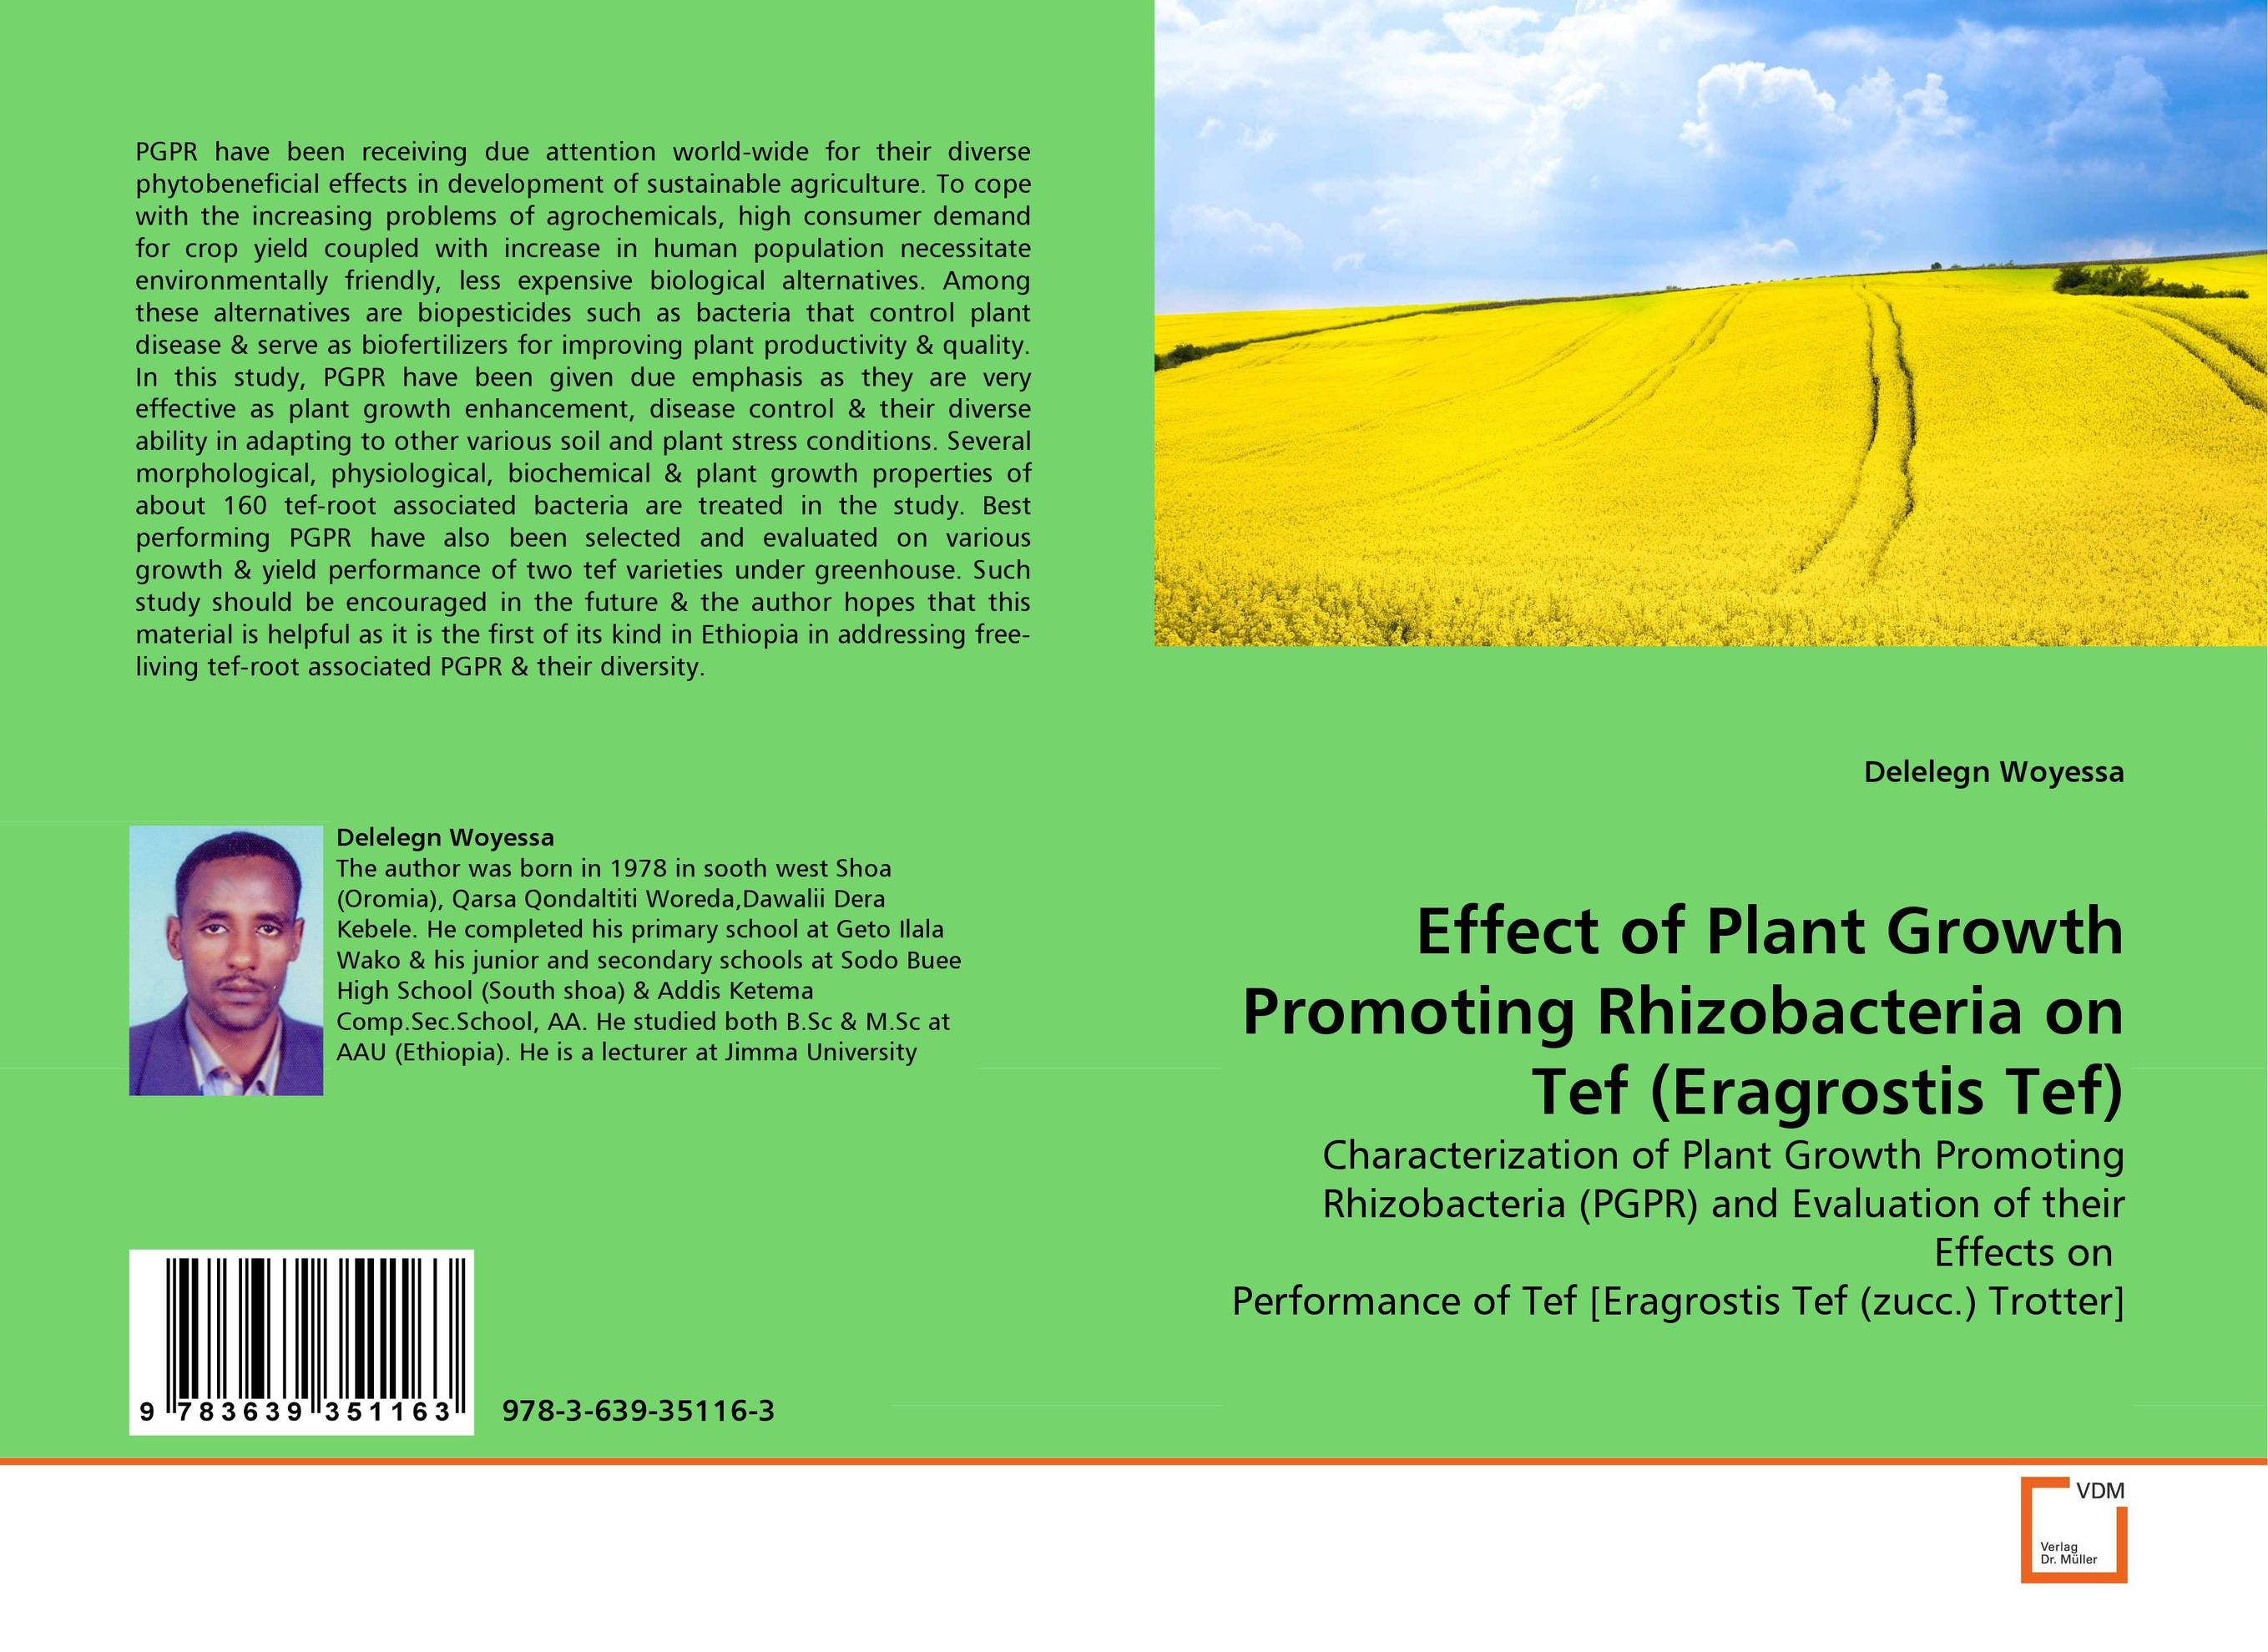 Effect of Plant Growth Promoting Rhizobacteria on Tef (Eragrostis Tef) effect of beta carotene on growth and color of pterophyllum scalare